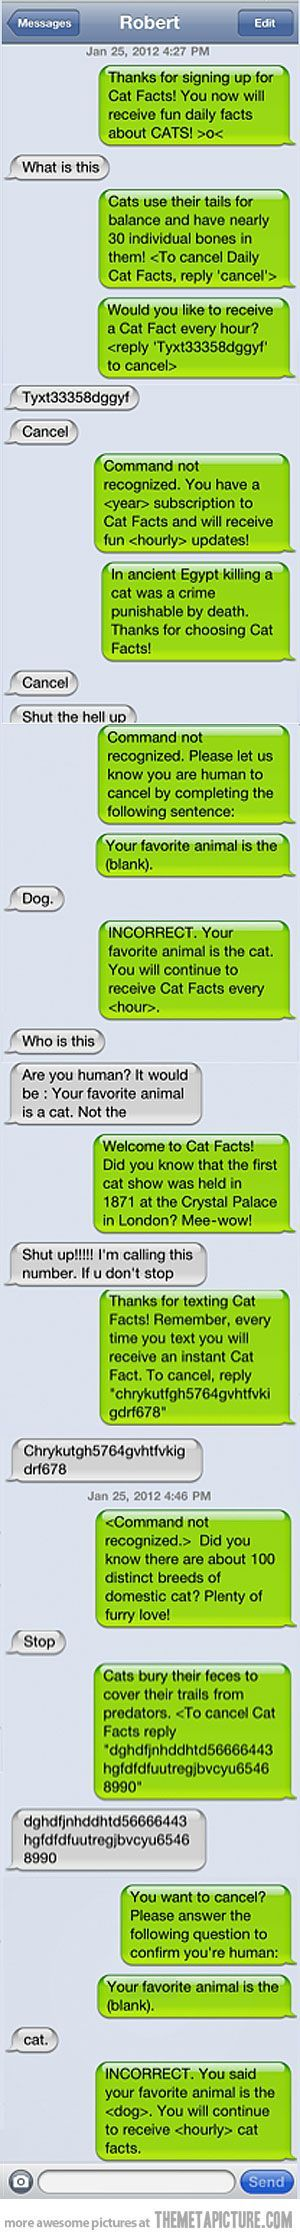 funny text message prank cats... I have a friend I could mess with for HOURS doing that.. I may need to change my number soon just to do it... But it is funny!!!